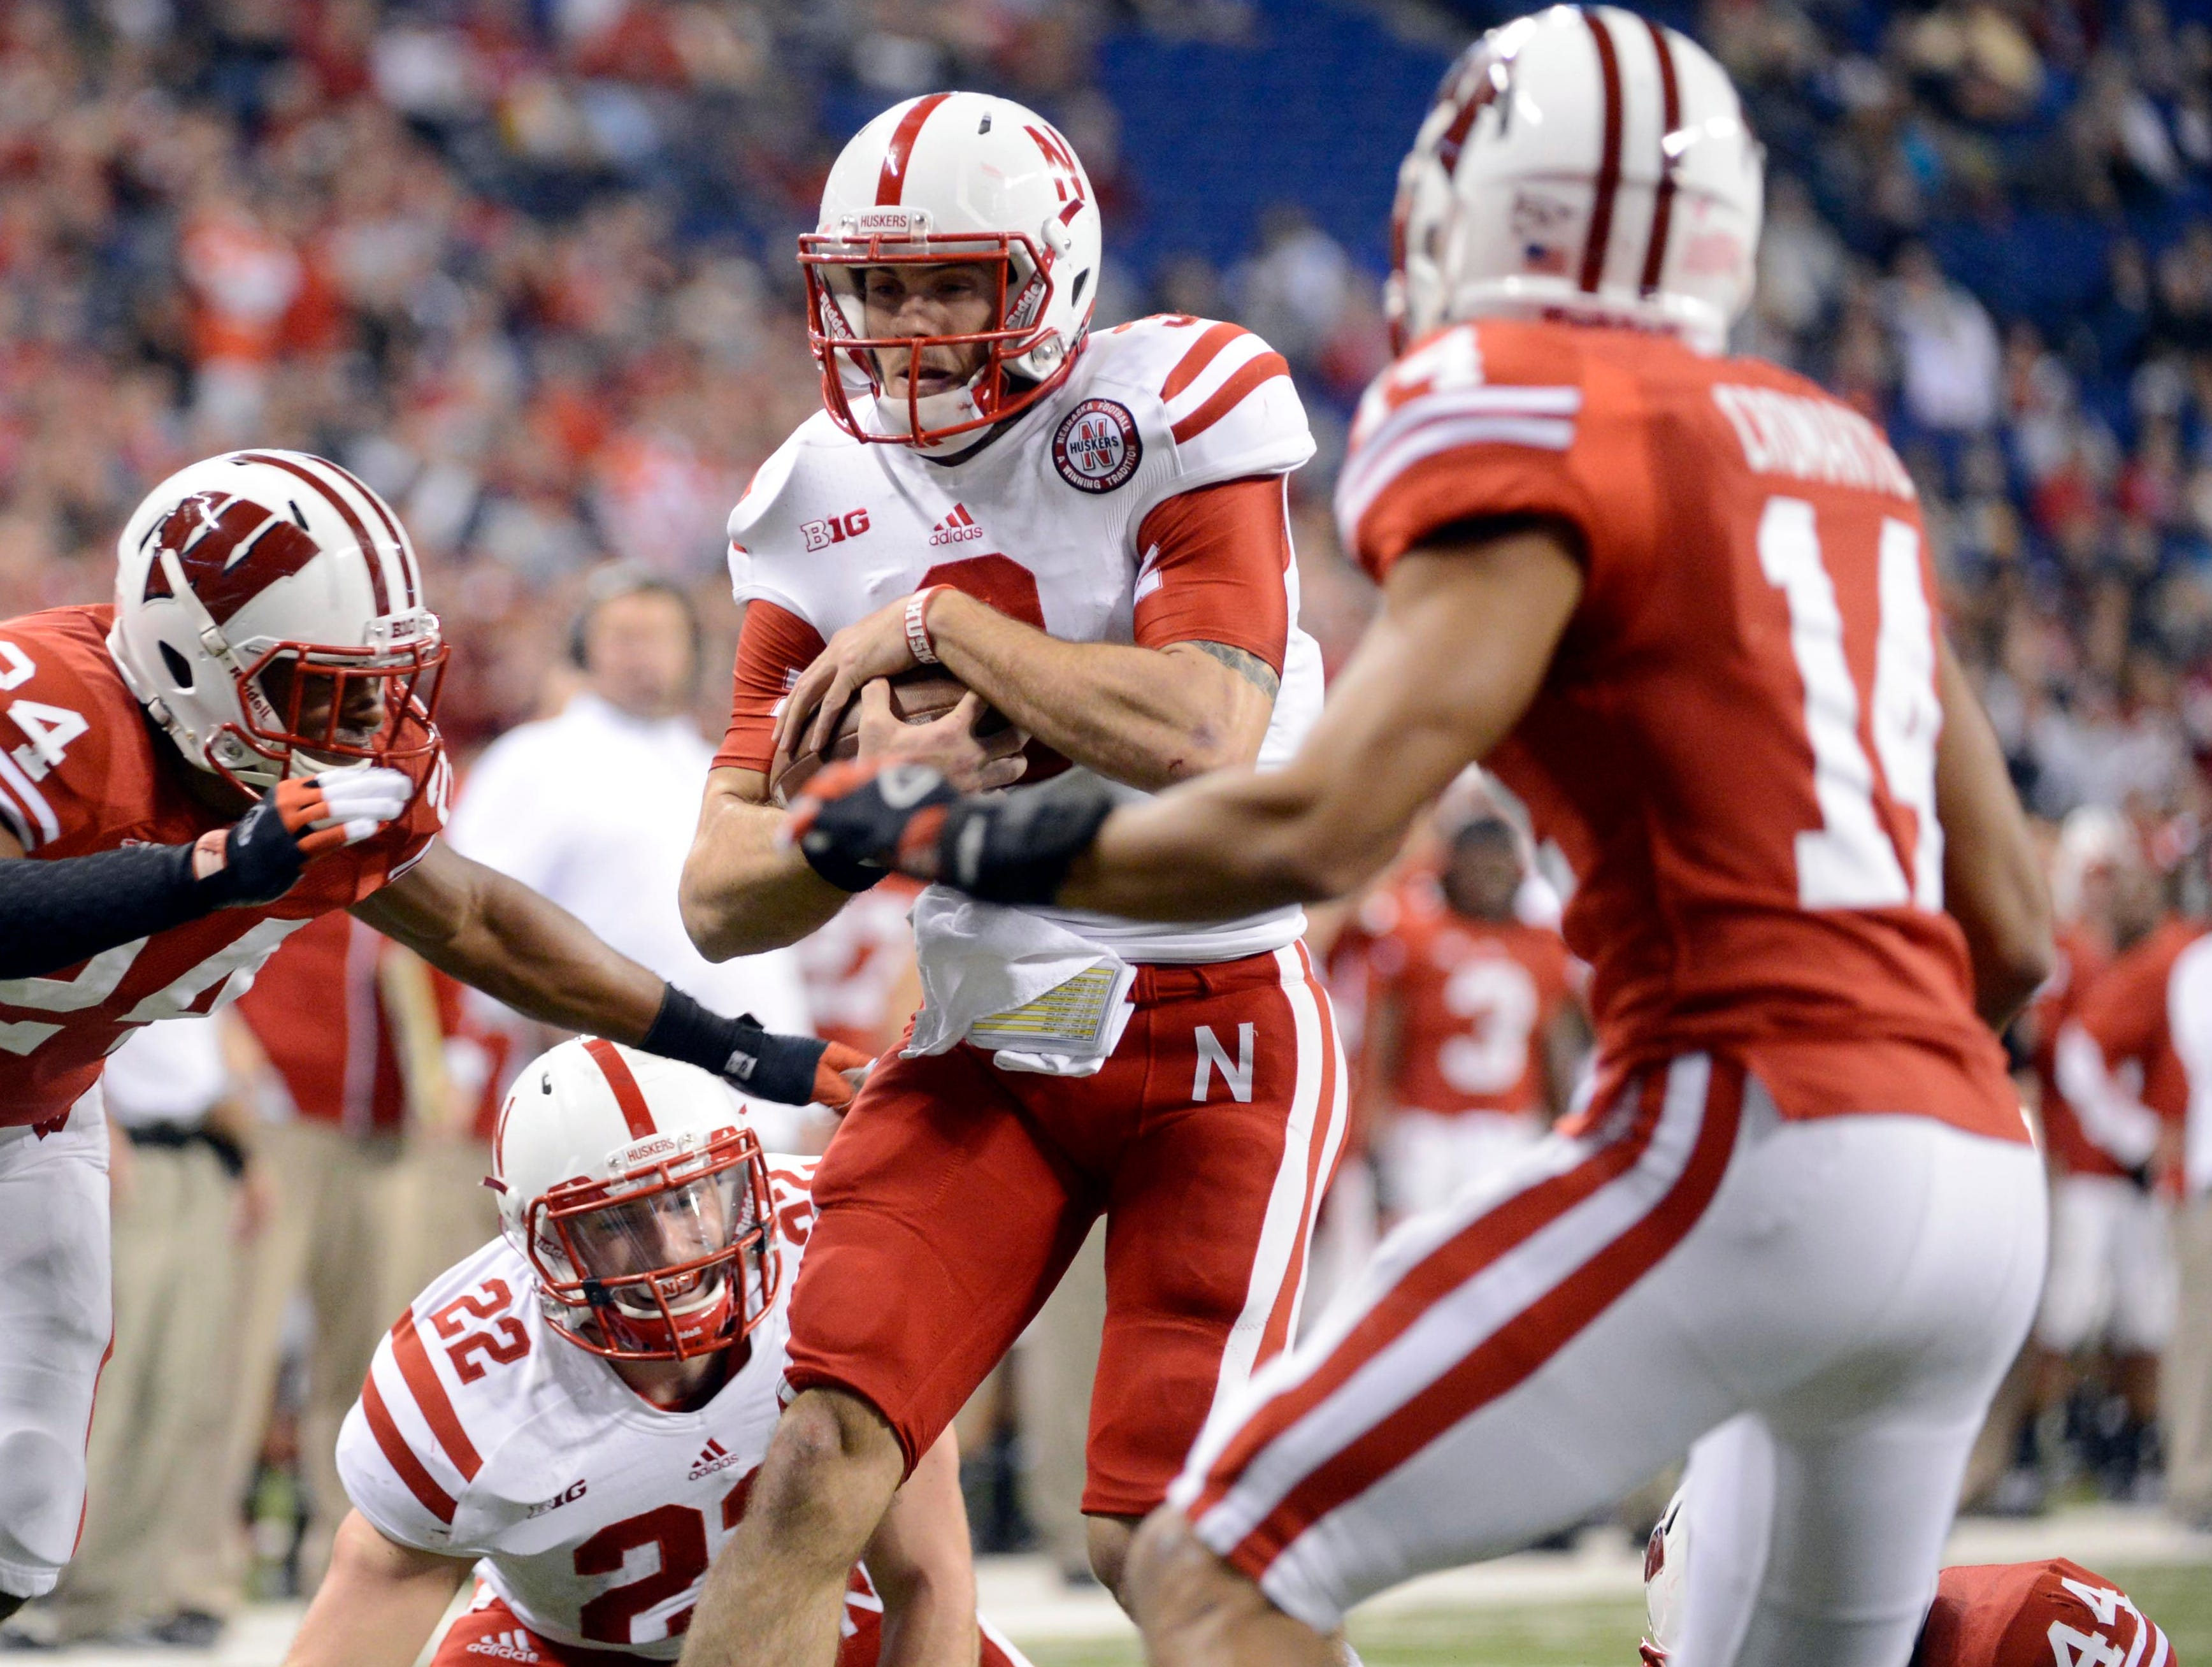 Nebraska quarterback Taylor Martinez runs in an 11-yard touchdown in the third quarter against Wisconsin in the Big Ten title game.